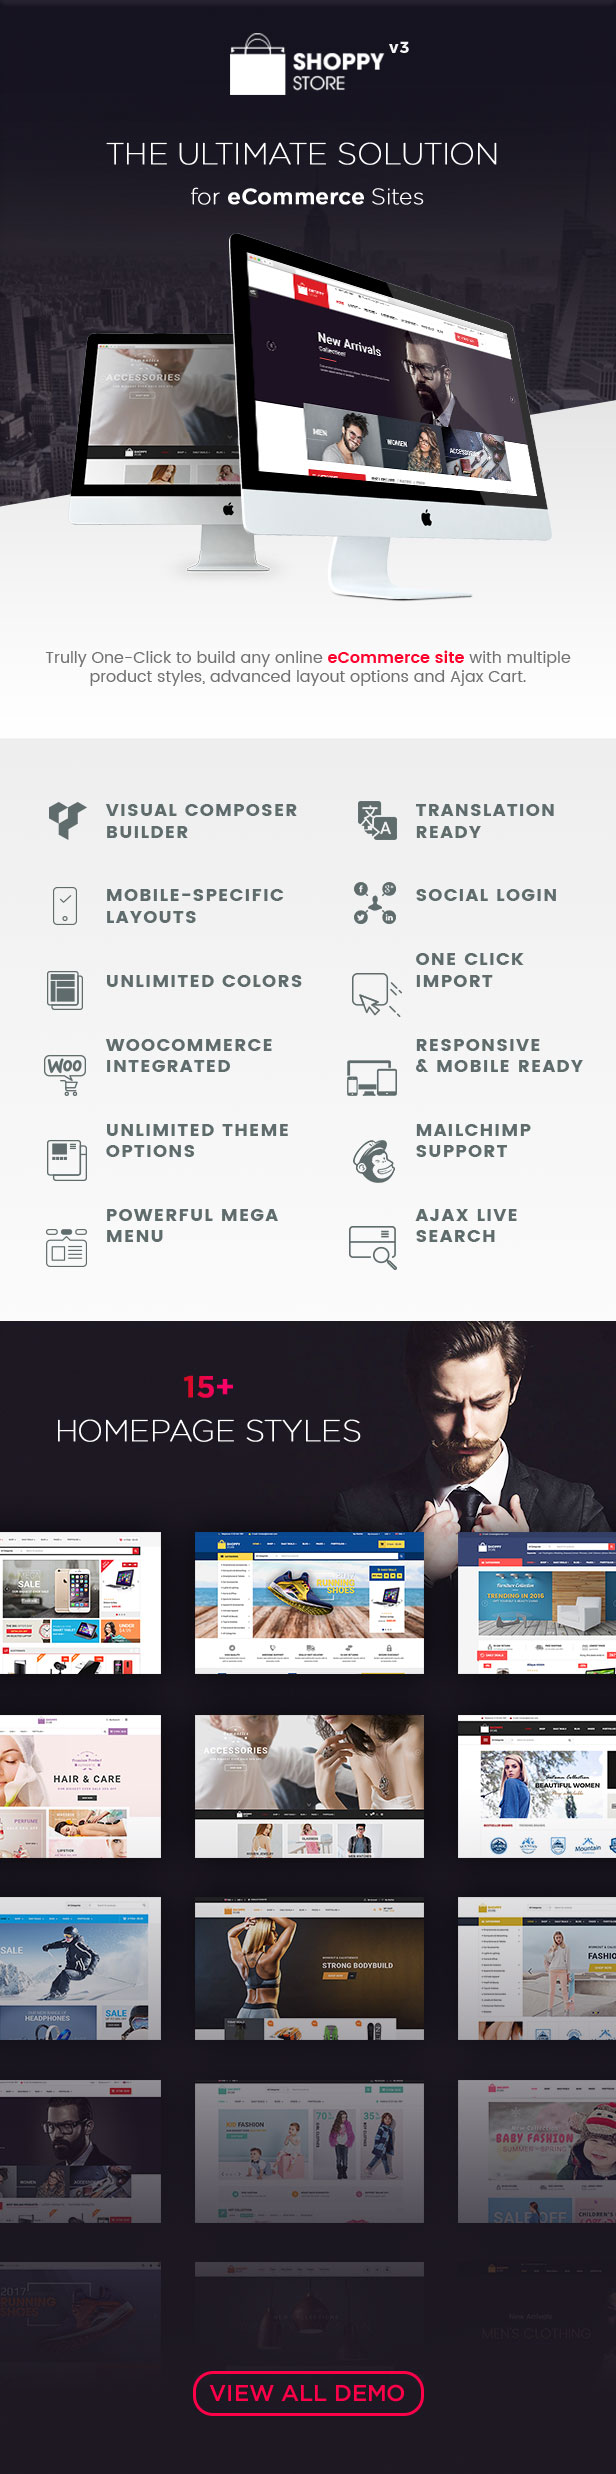 ShoppyStore - Multipurpose Responsive WooCommerce WordPress Theme (15+ Homepages & 3 Mobile Layouts) Download